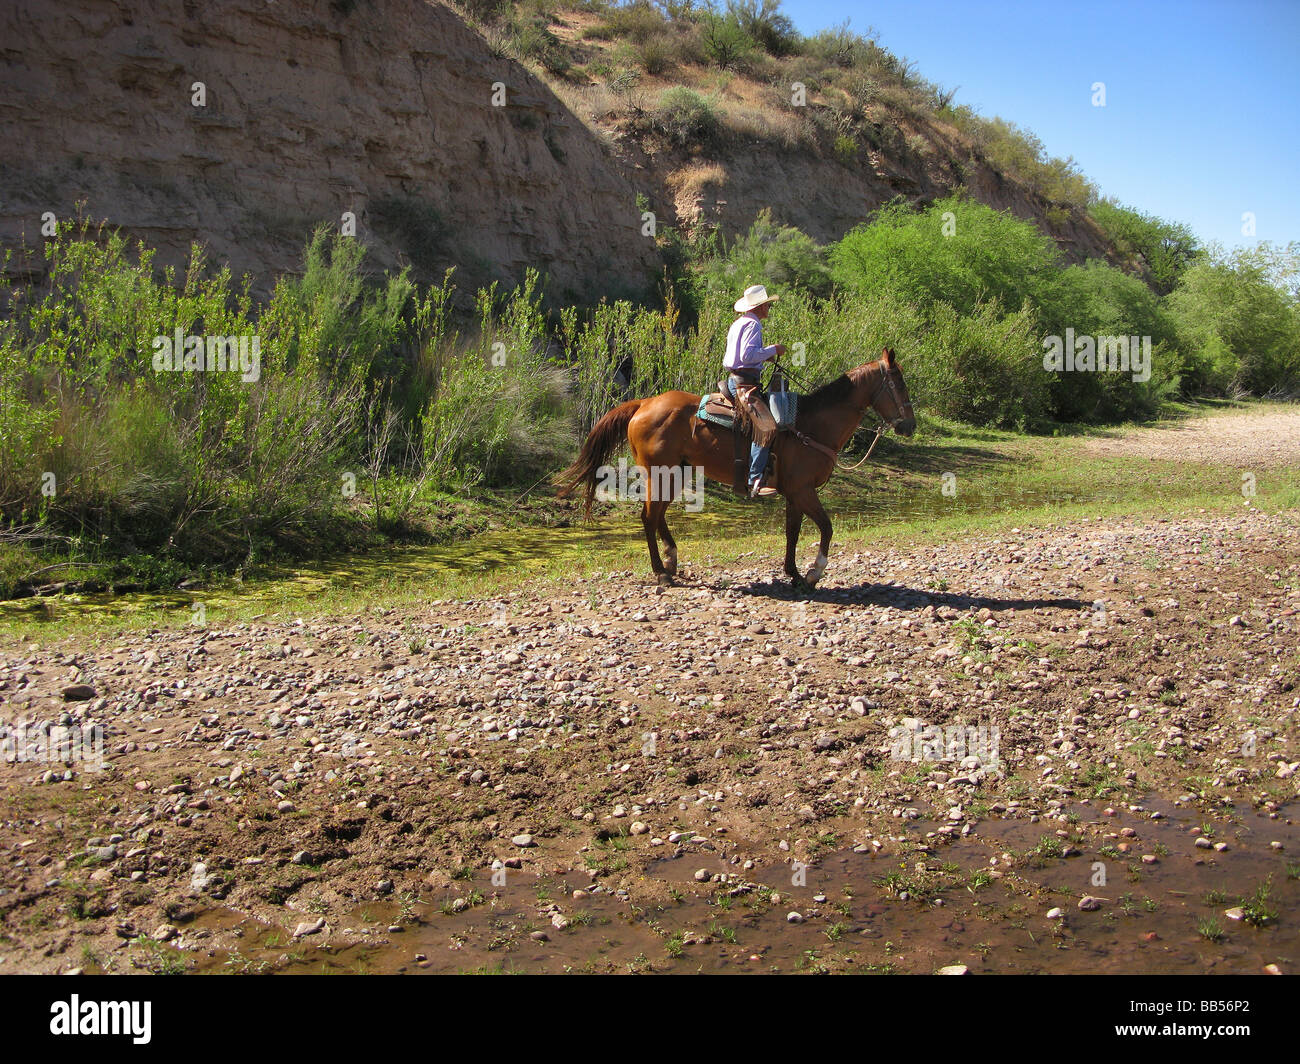 Cowboy on a trail,in landscape. - Stock Image